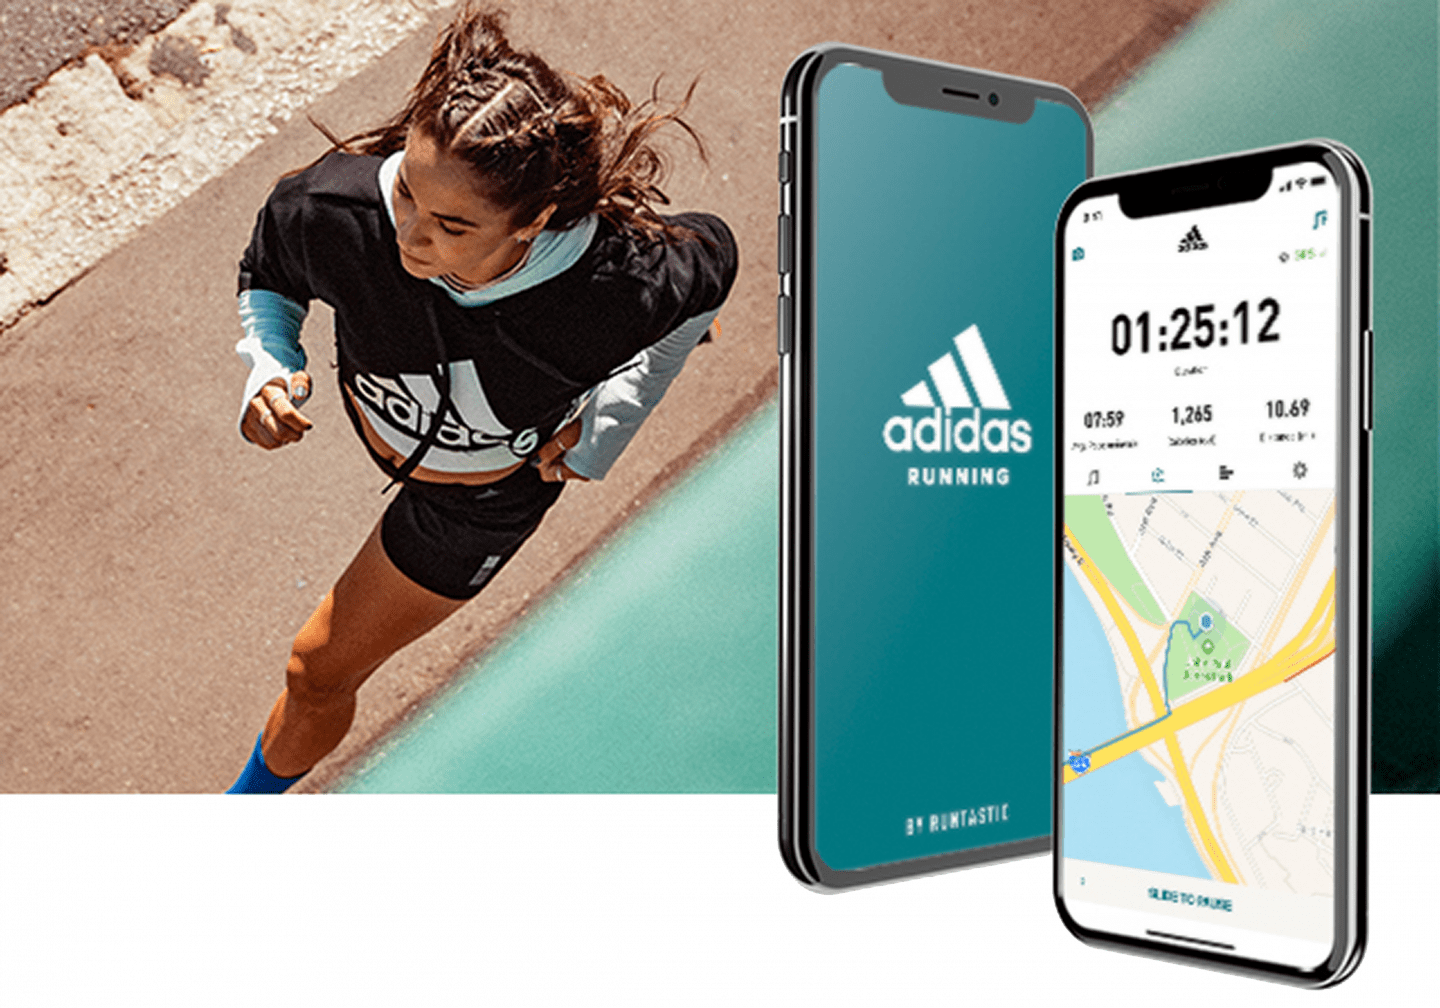 Woman wearing sportswear running on the beach, phone, mobile, Runtastic, adidas, Run for the Oceans, event, running